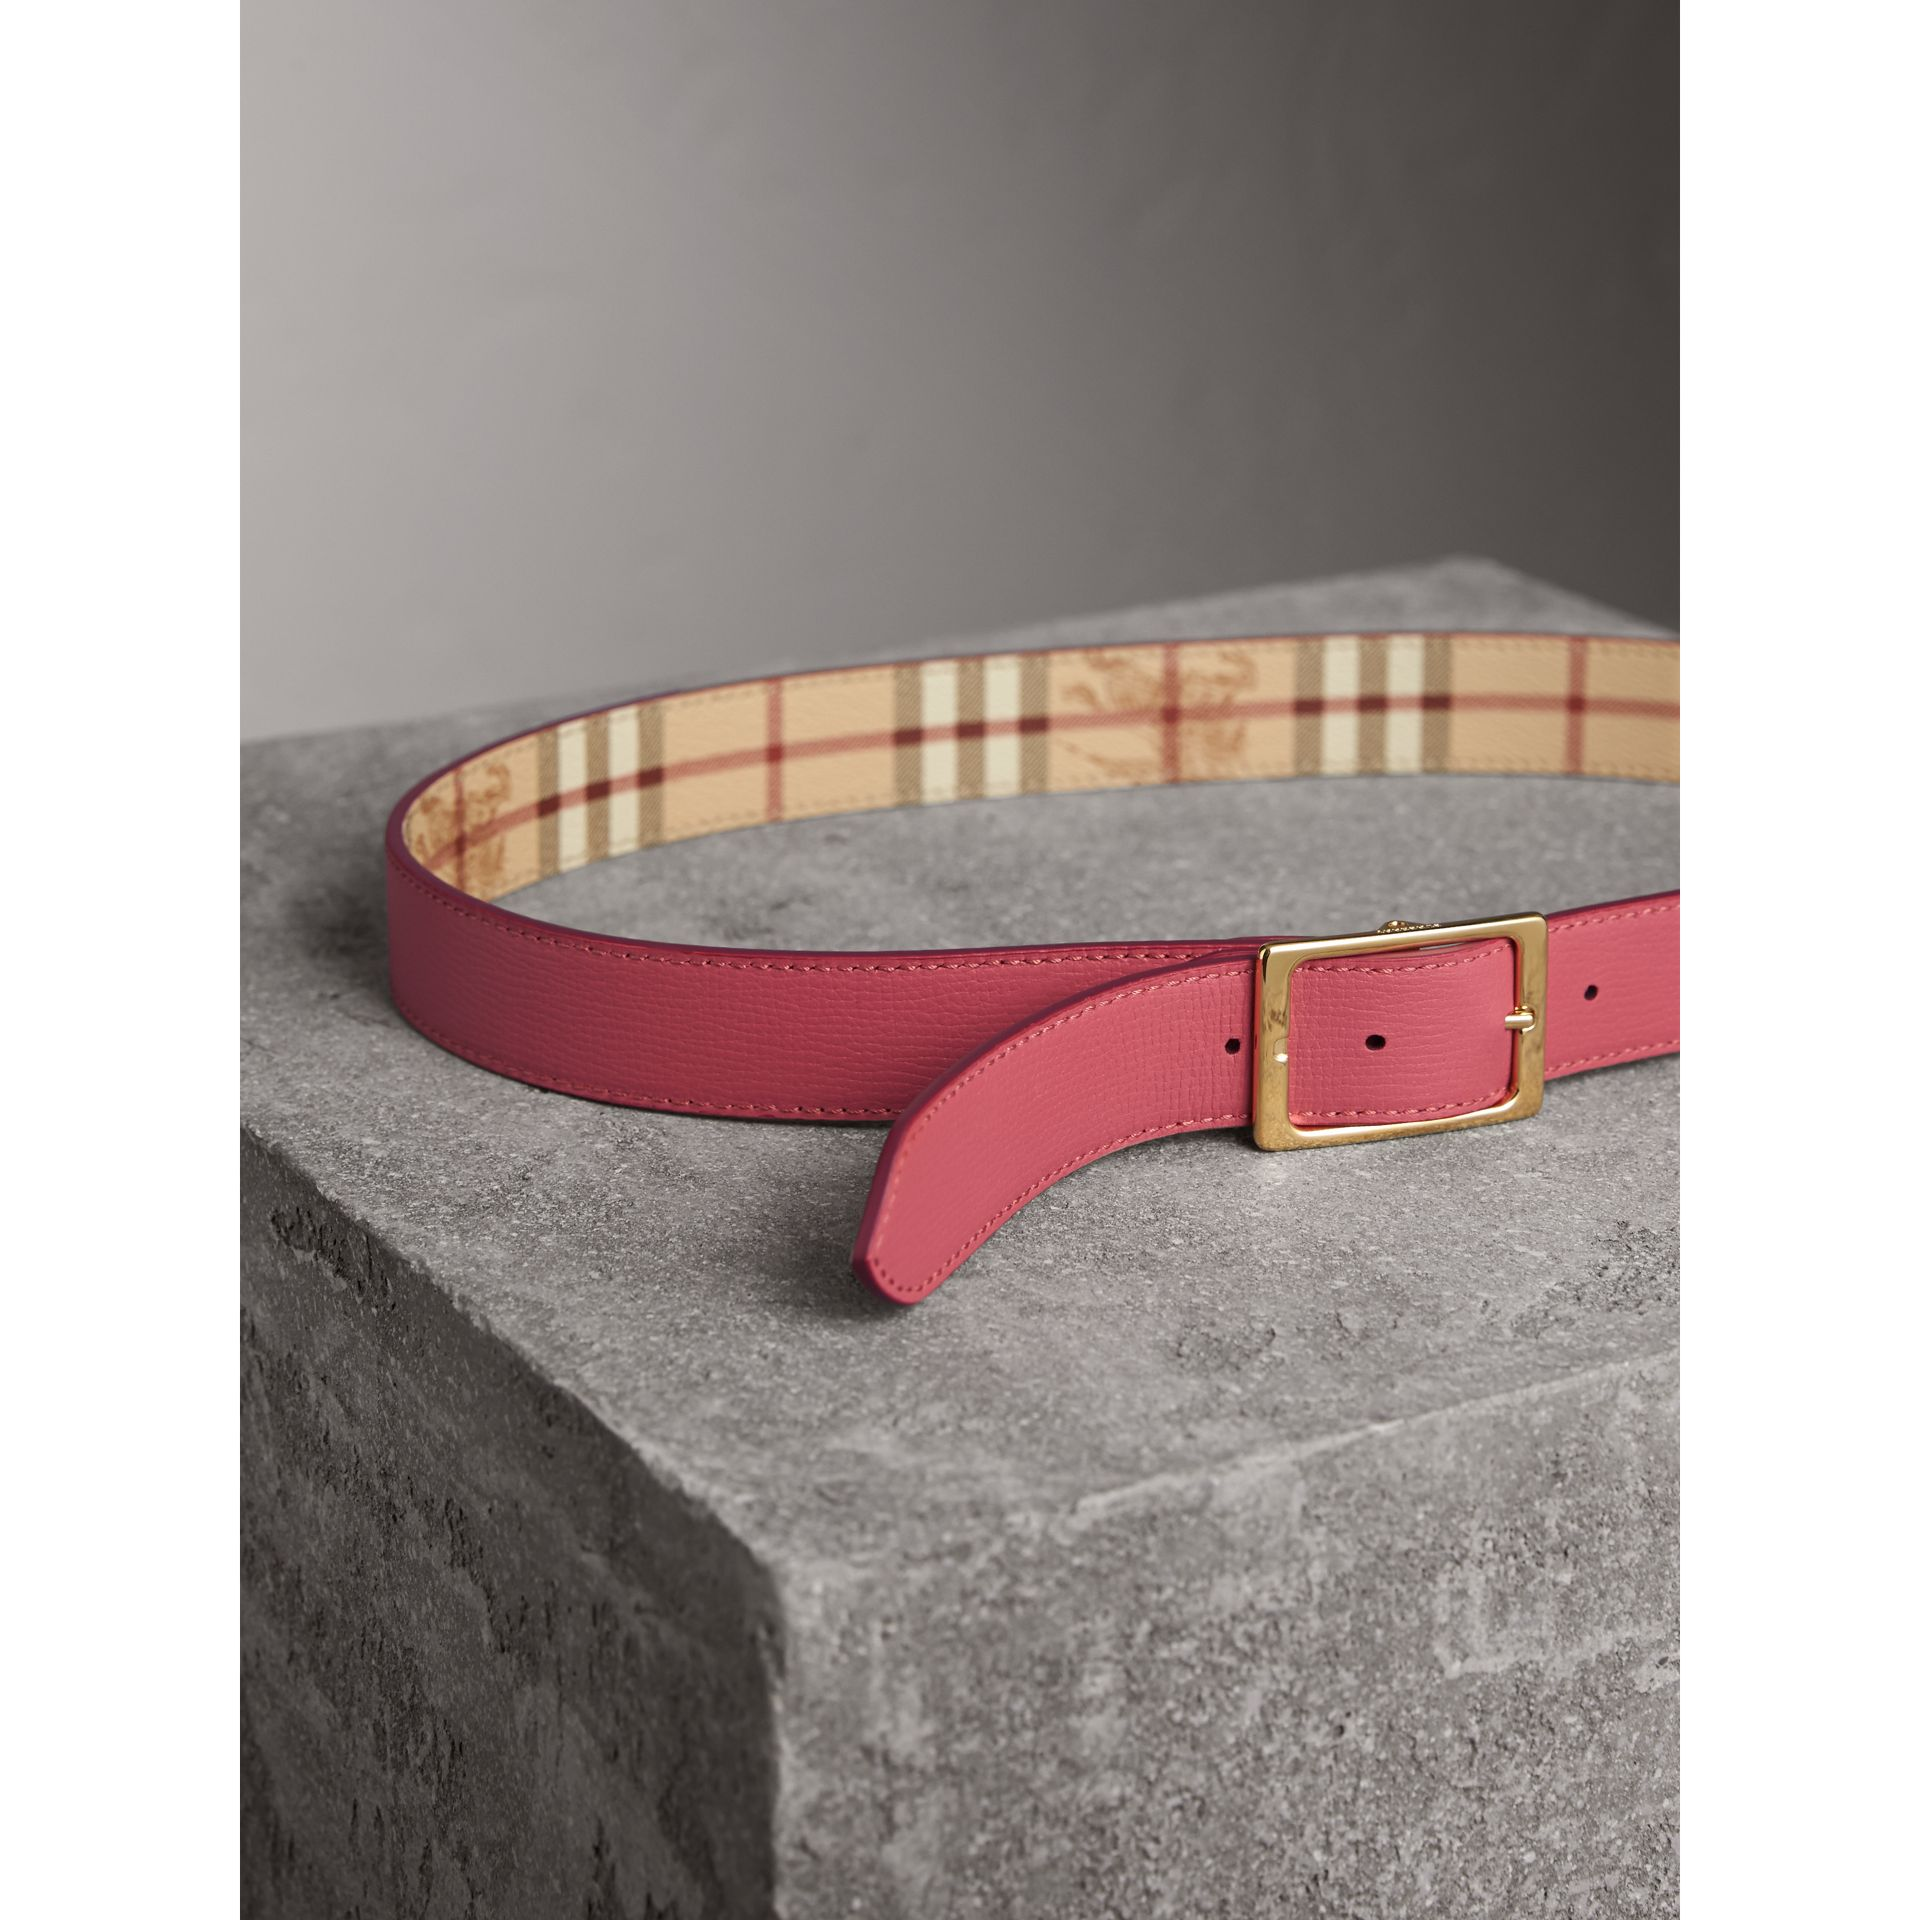 Riveted Reversible Check and Leather Belt in Plum Pink - Women | Burberry - gallery image 6